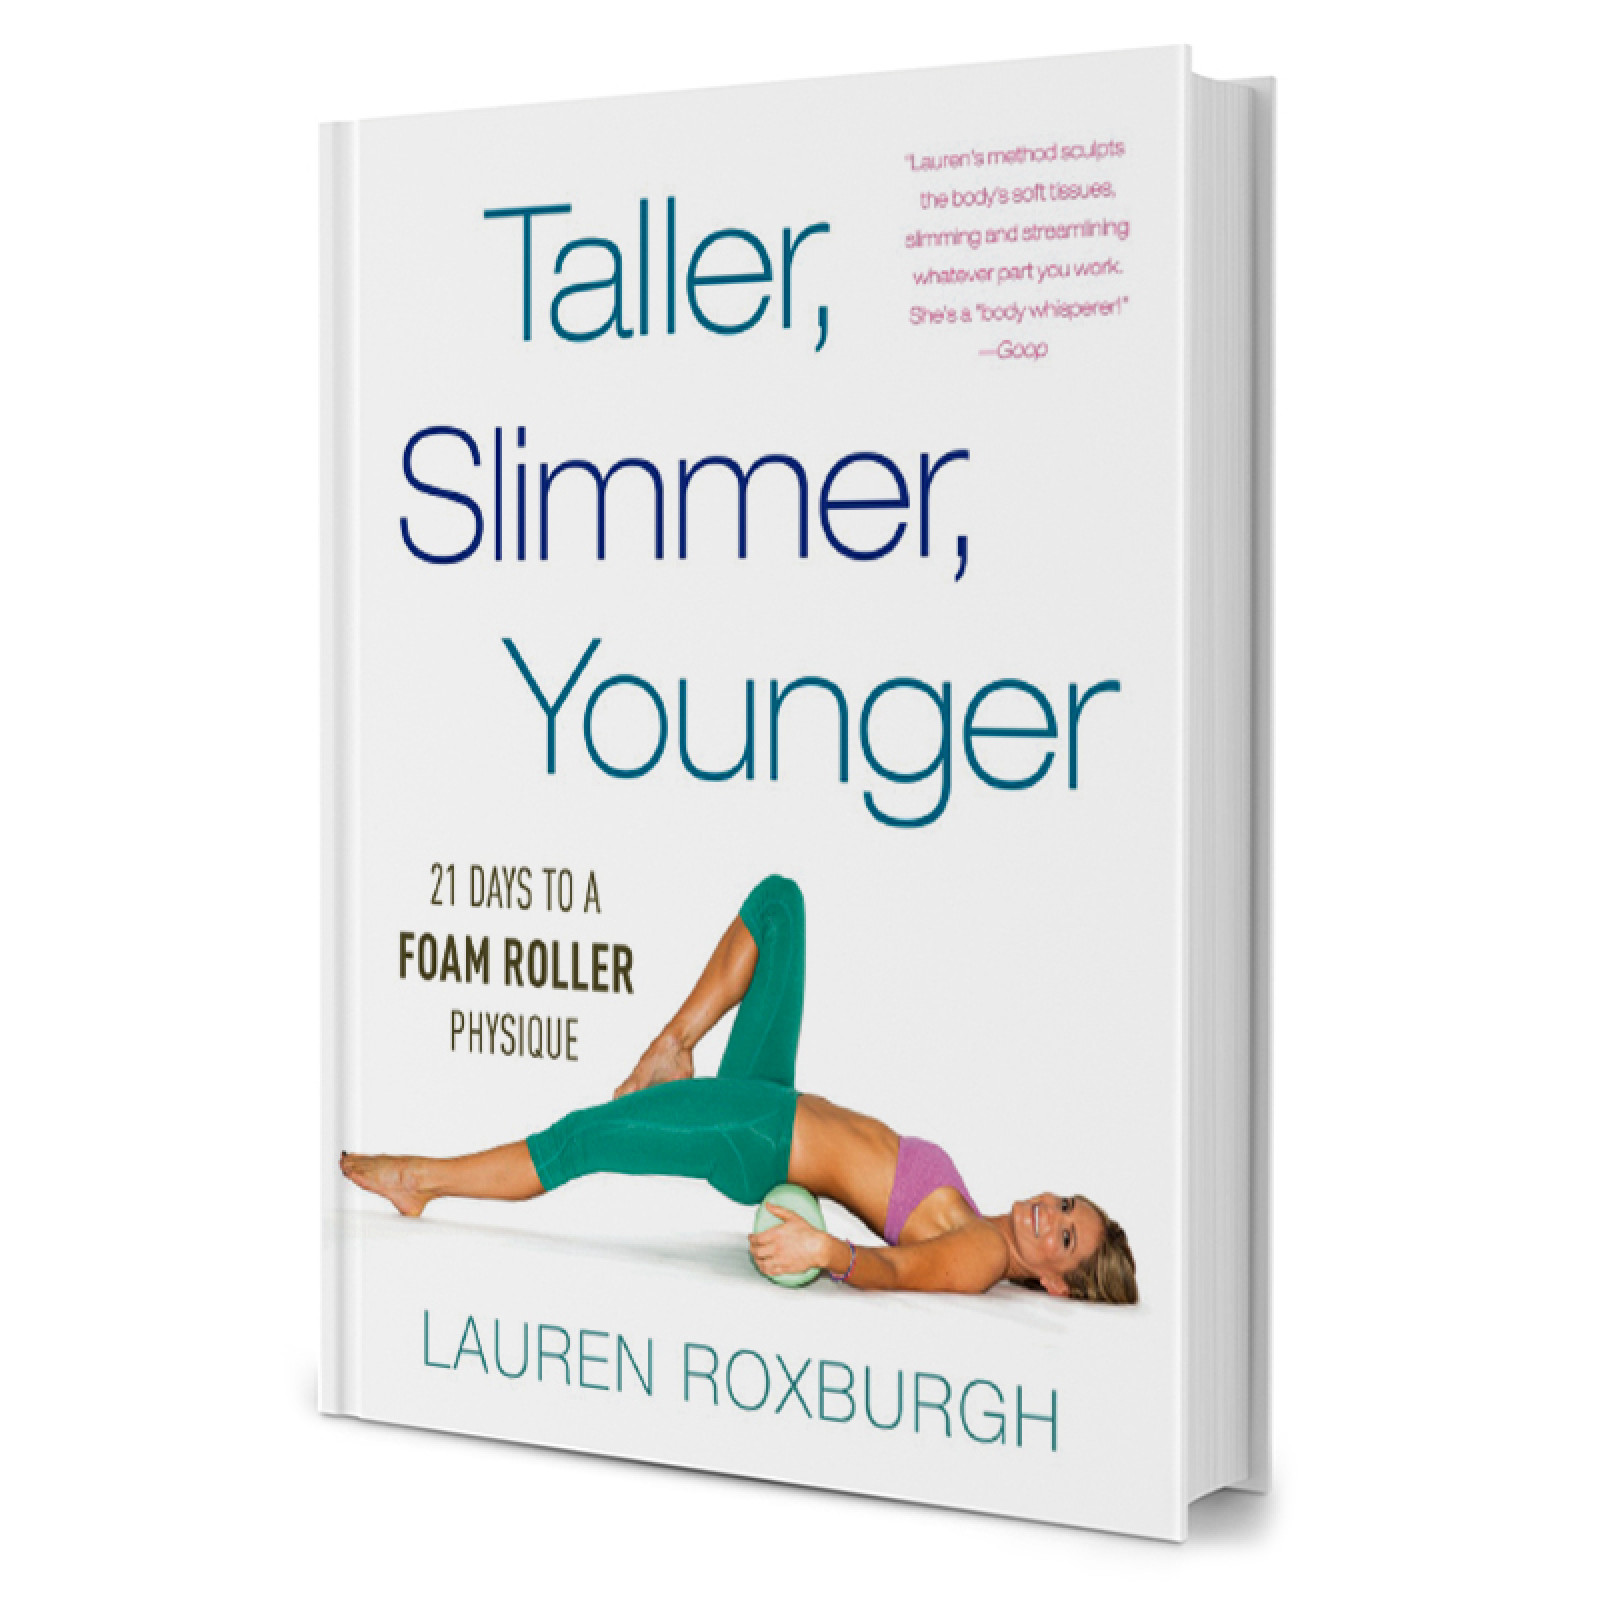 Taller, slimmer, younger: 21 days to a foamroller physique